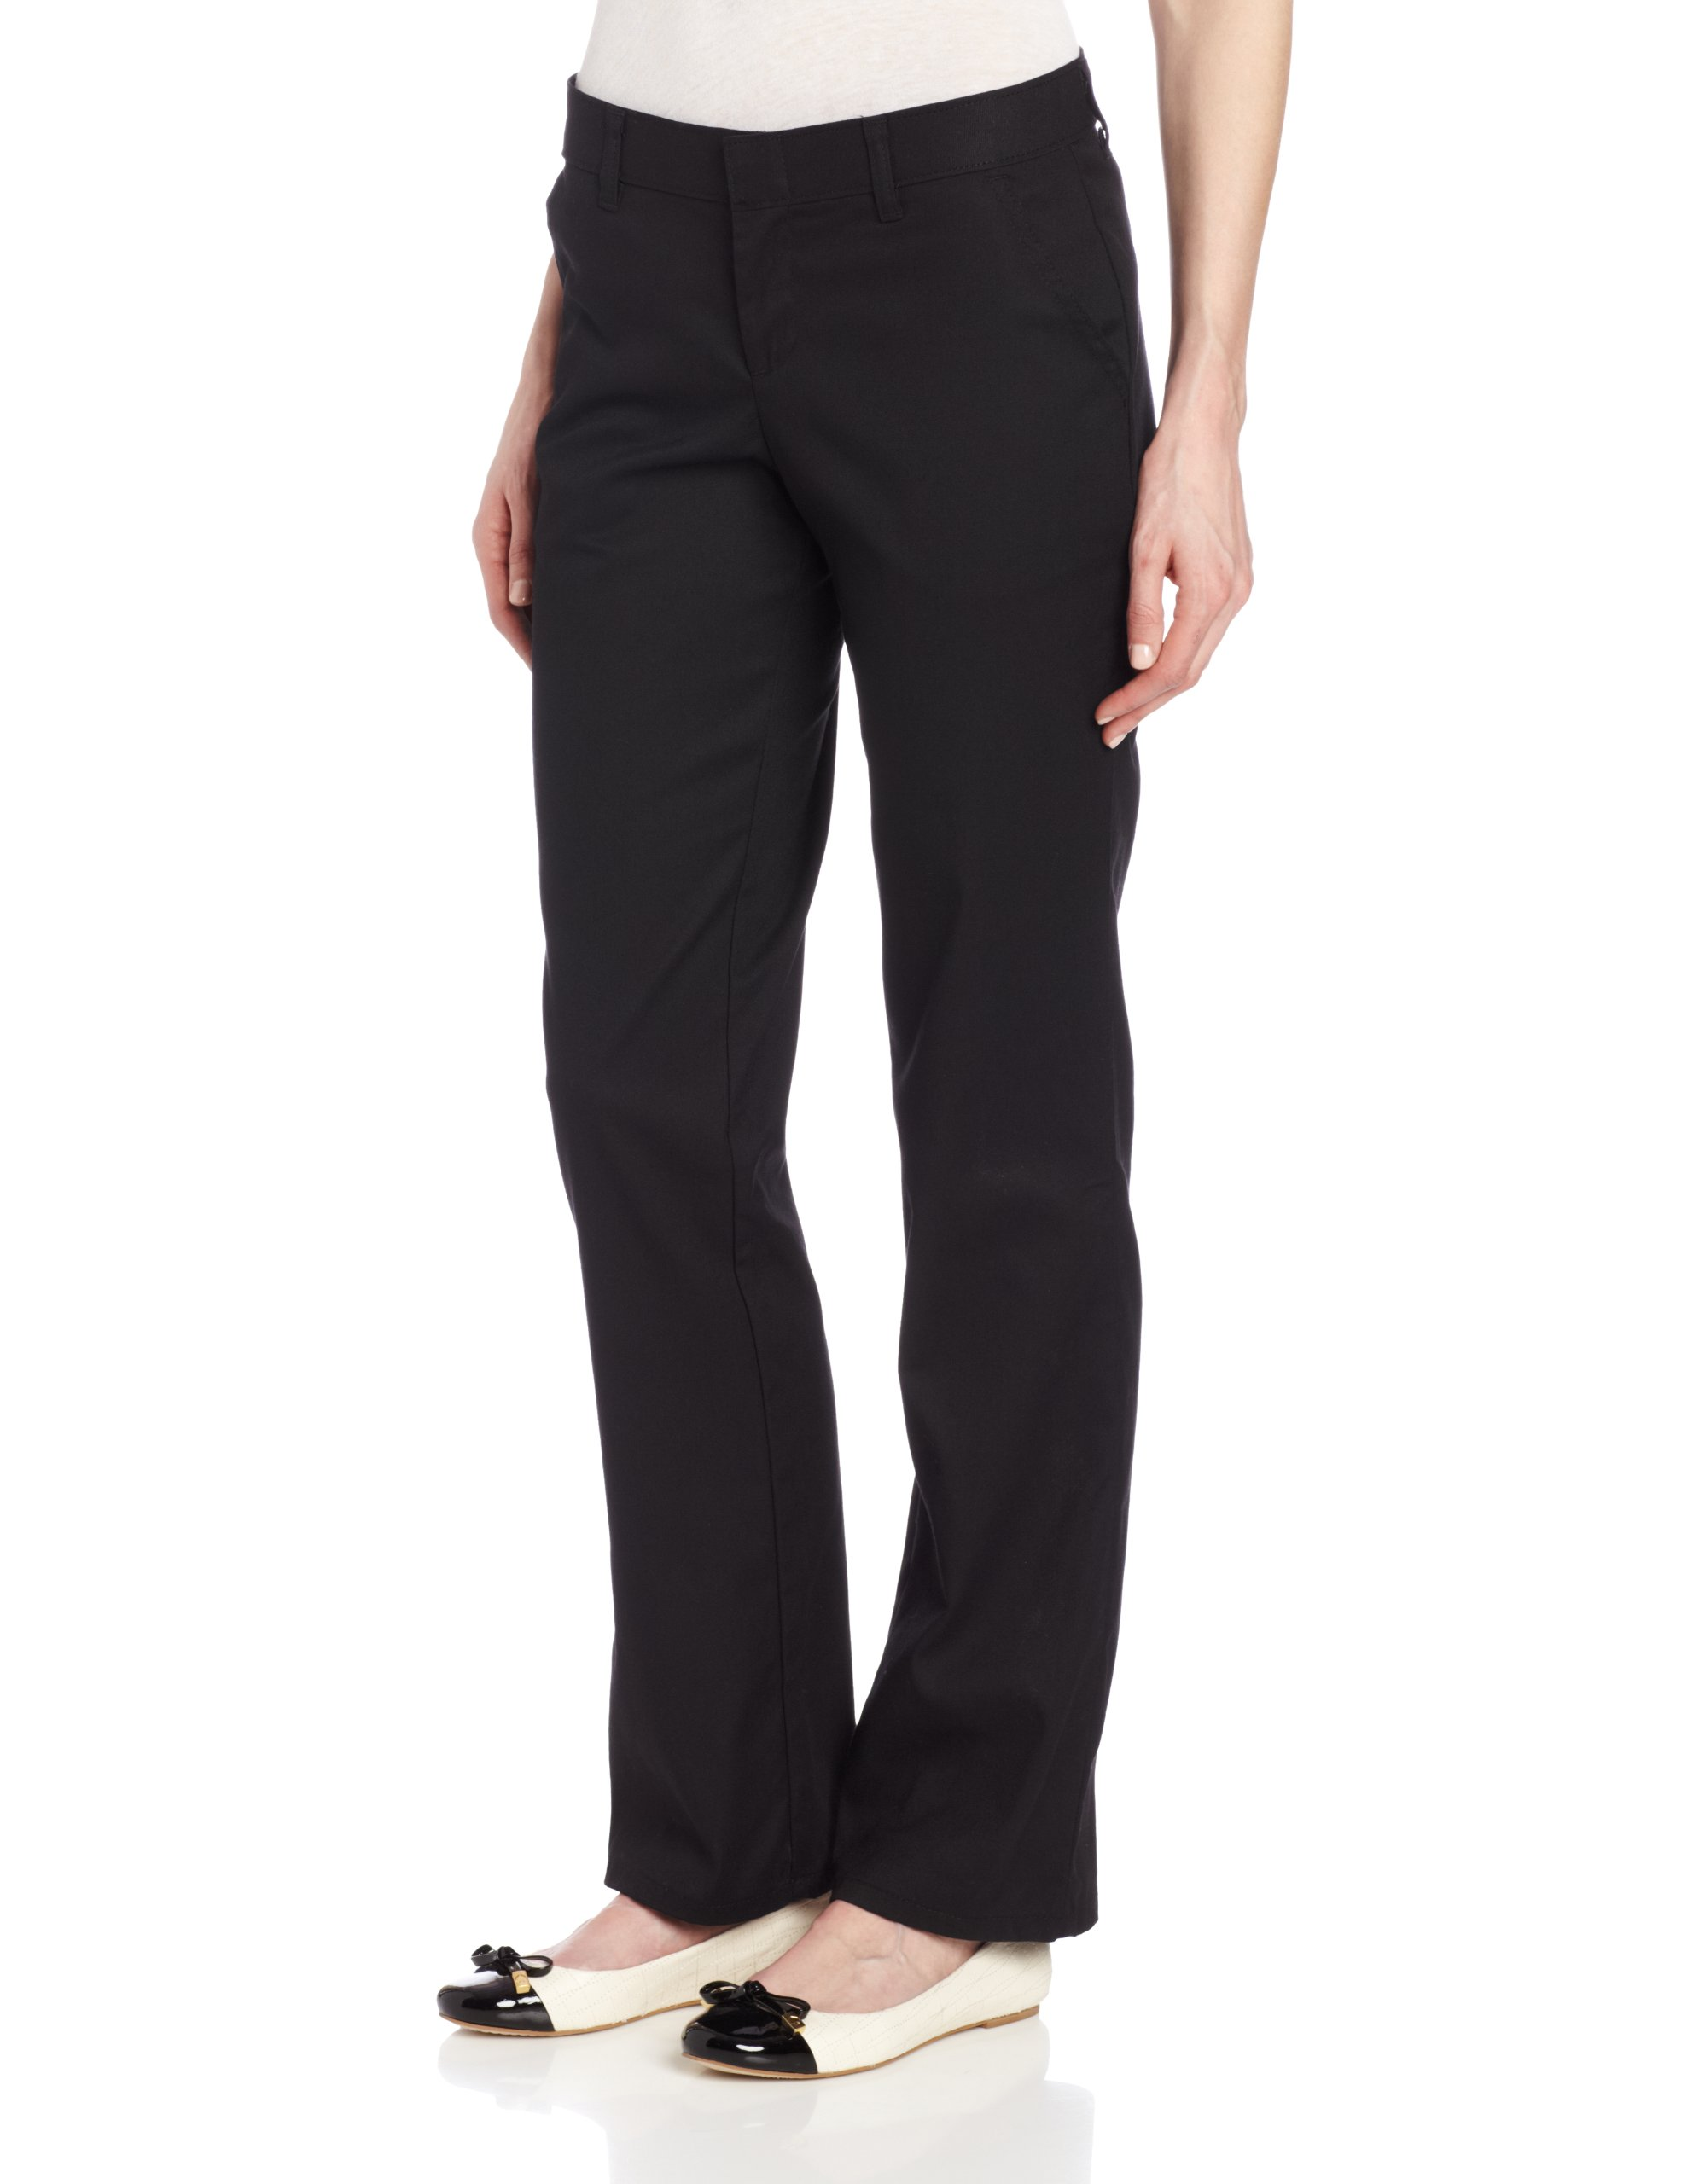 Dickies Women's Wrinkle Resistant Flat Front Twill Pant with Stain Release Finish, Black, 0 Regular